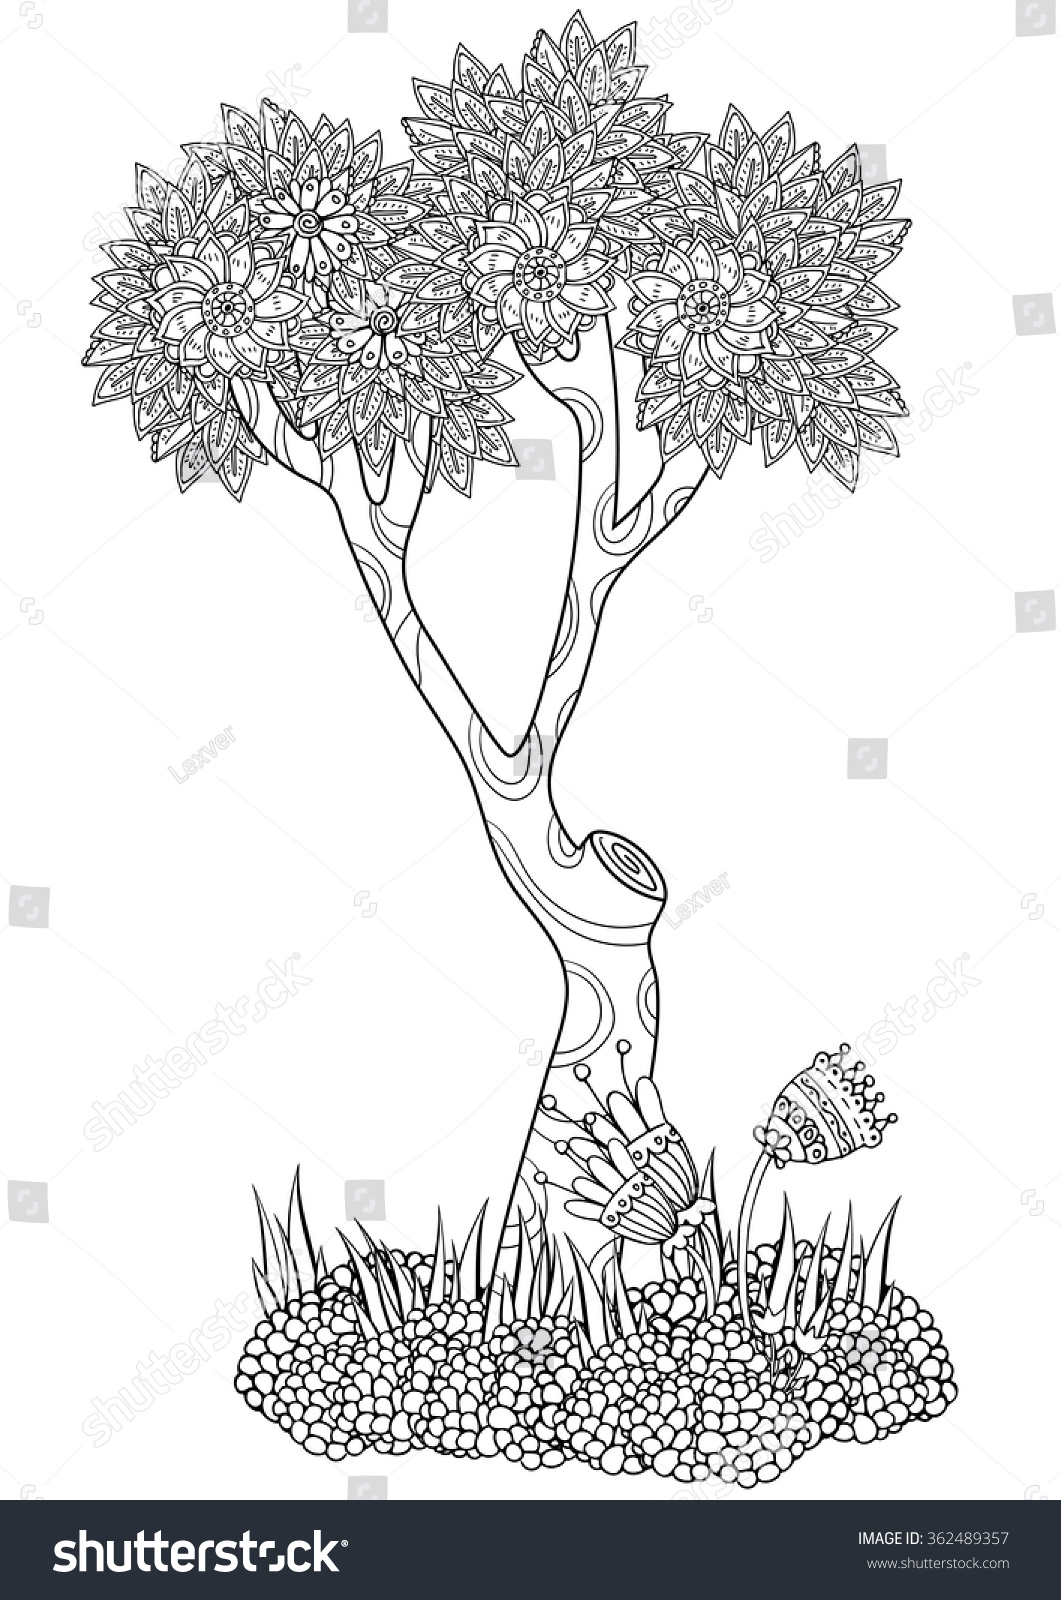 Coloring pages trees and flowers - Isolated Tree With Flowers Coloring Book Page For Adult